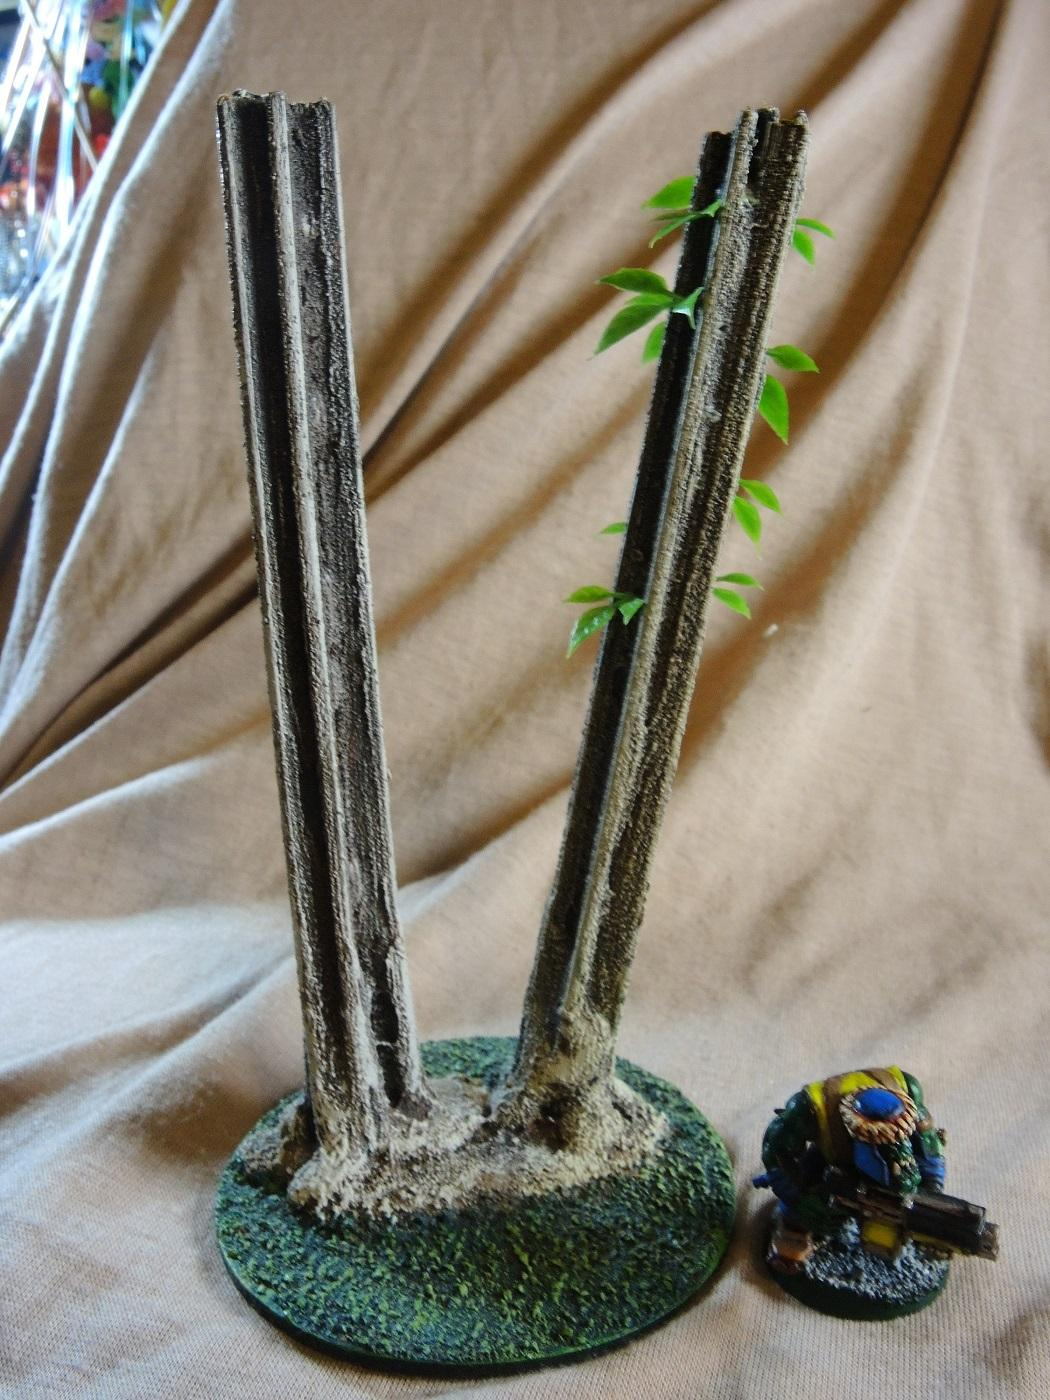 Hotglue Is Your Friend, Jungle, Scratch Build, Step-by-step, Straws Too, Terrain, Waaazag, Work In Progress